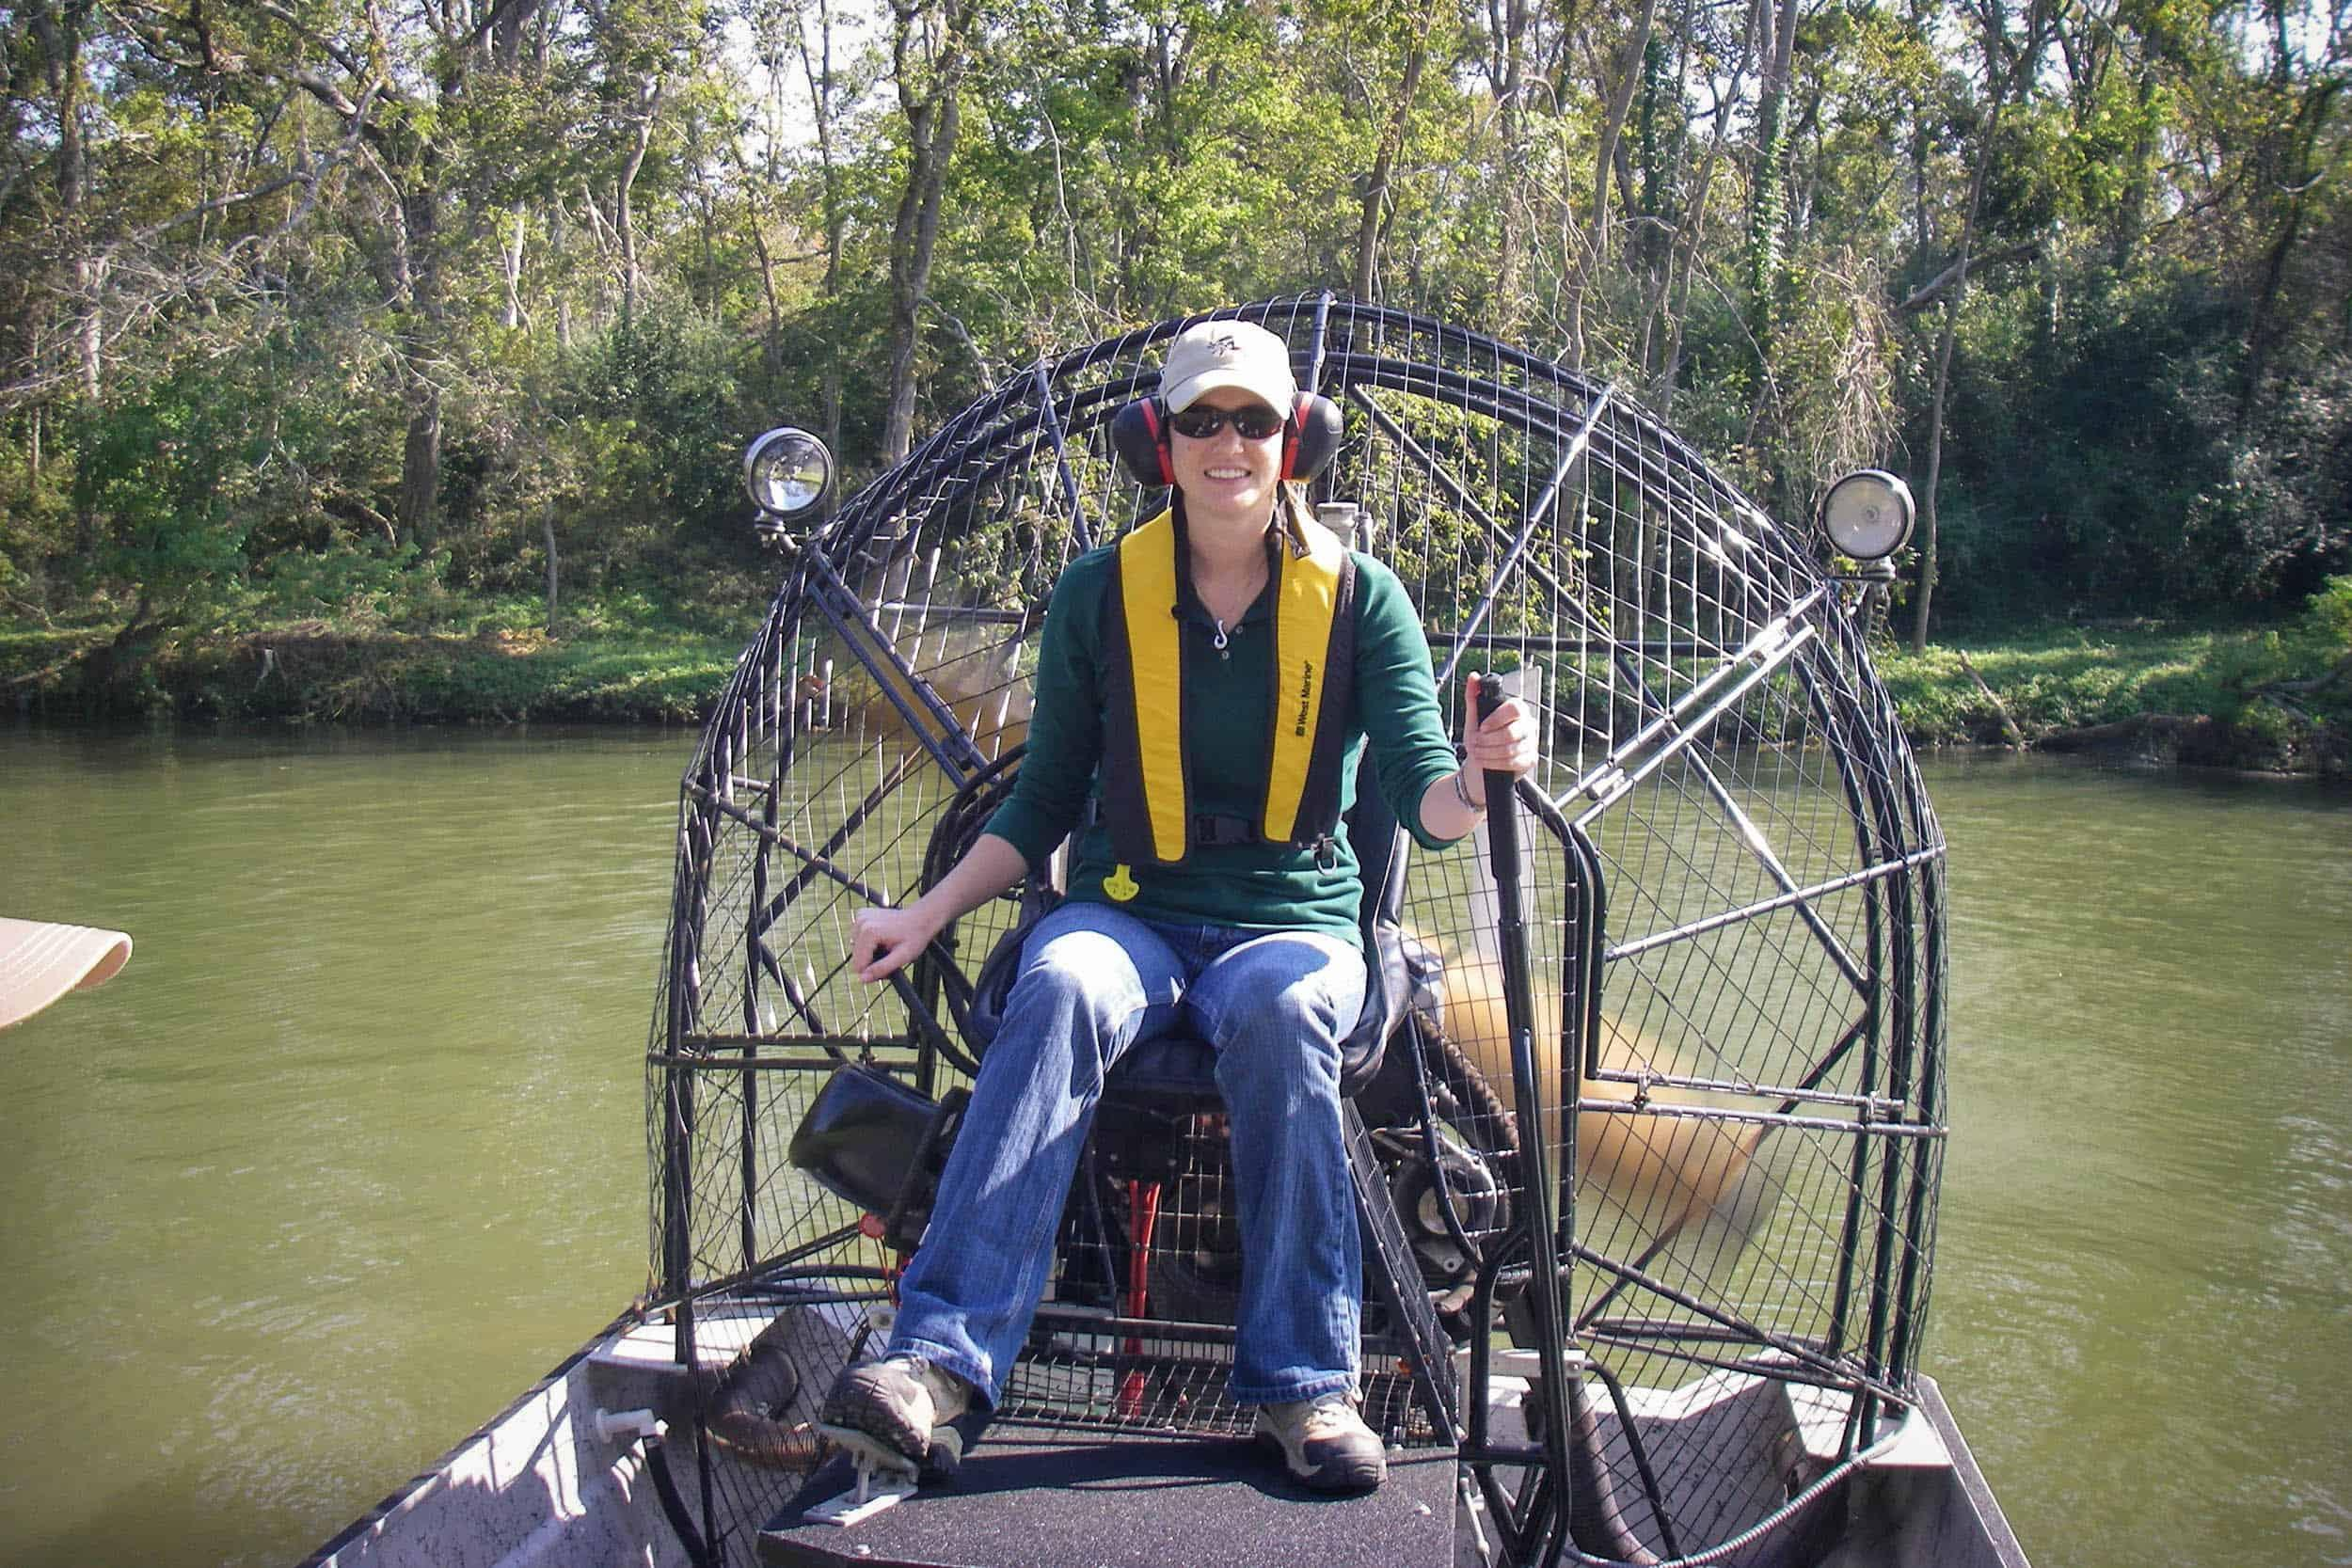 Jenny Oakley gets her turn at an airboat driving lesson